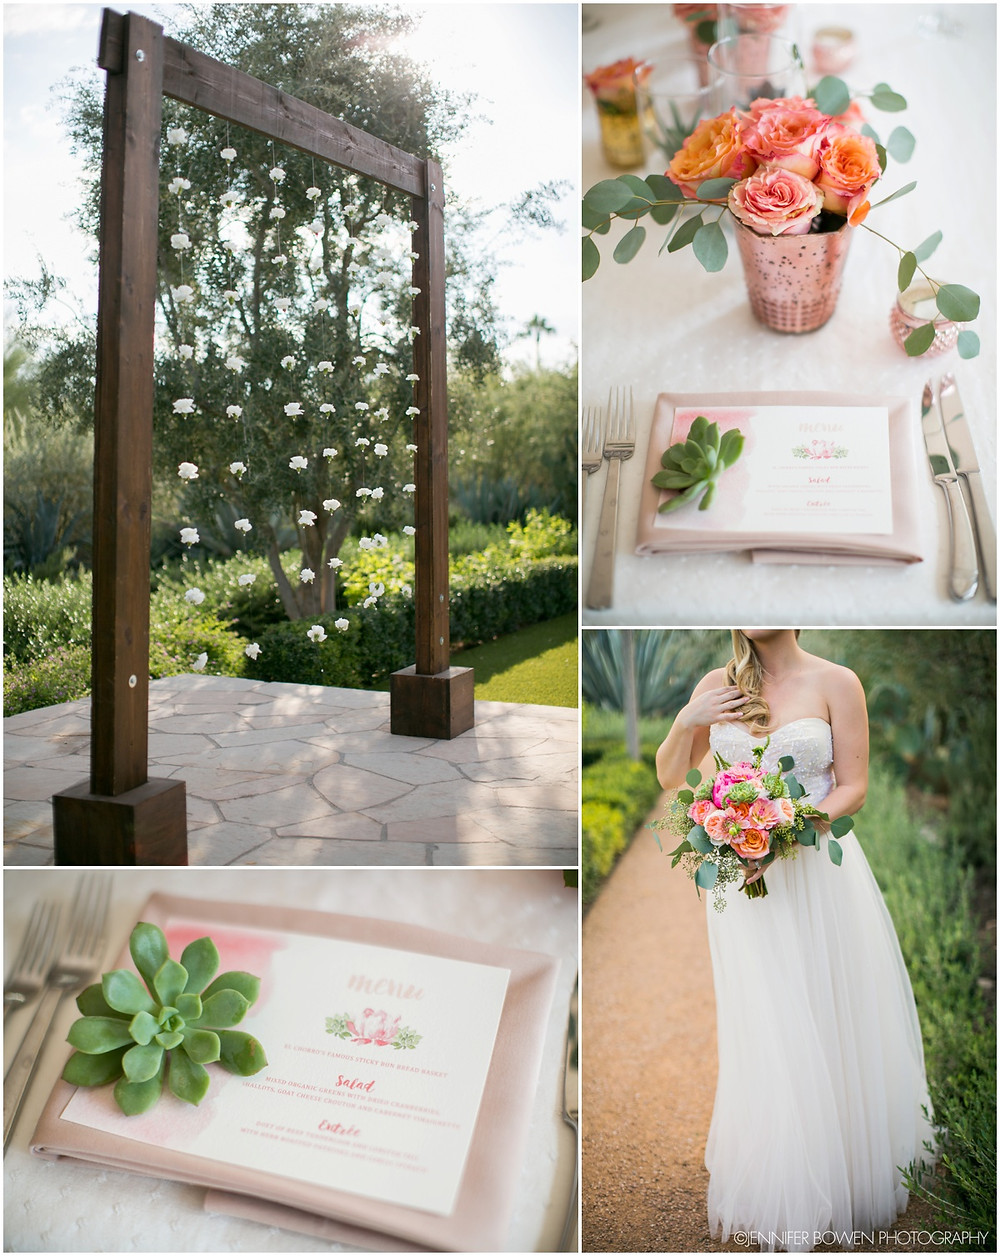 ceremony, altar, flowers, decorations, ideas, rustic, wood, arch